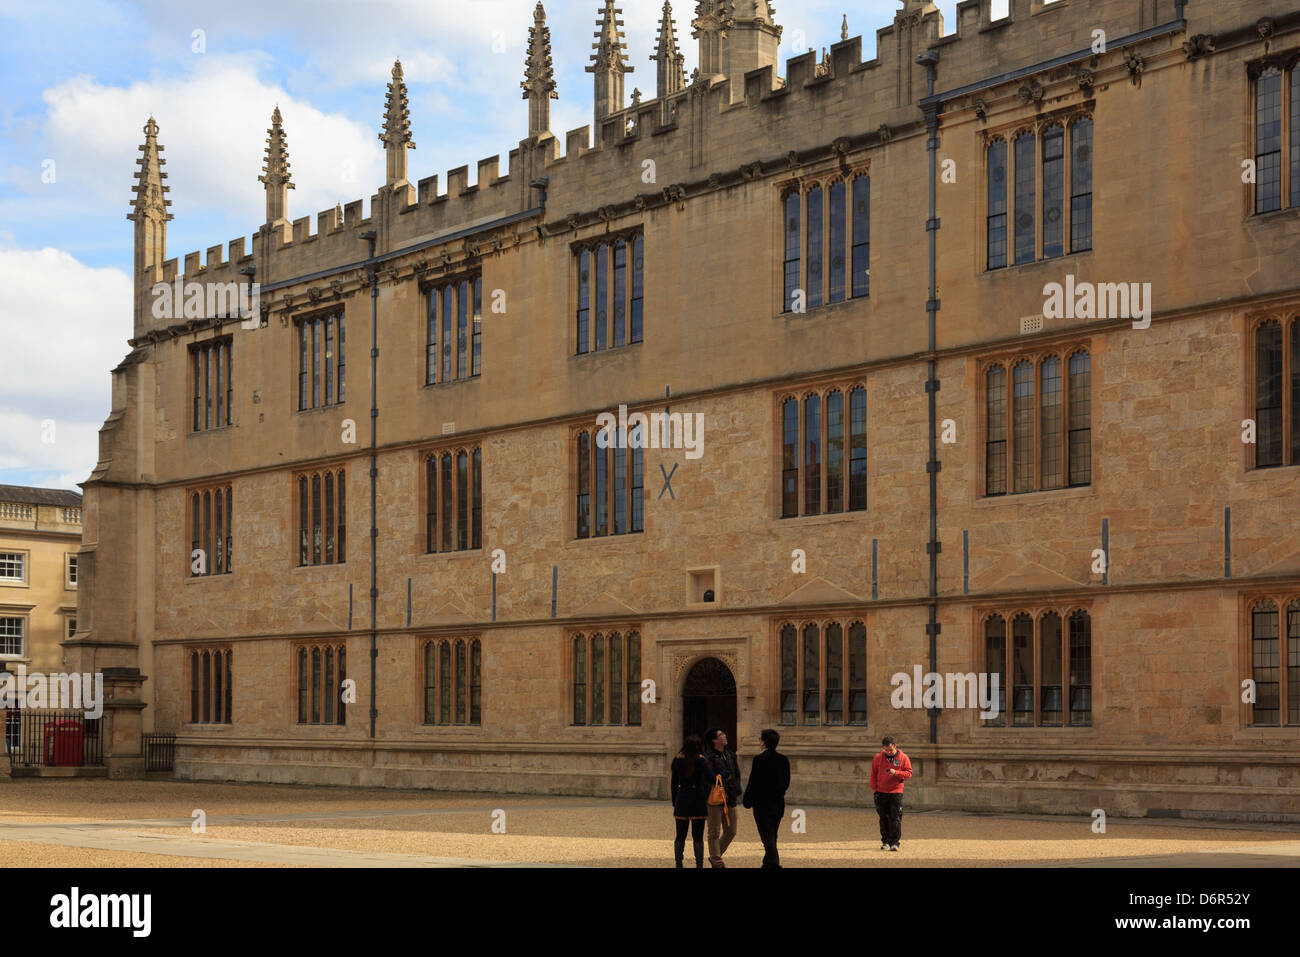 Old Bodleian Library building is part of the university. Oxford, Oxfordshire, England, UK, Britain - Stock Image